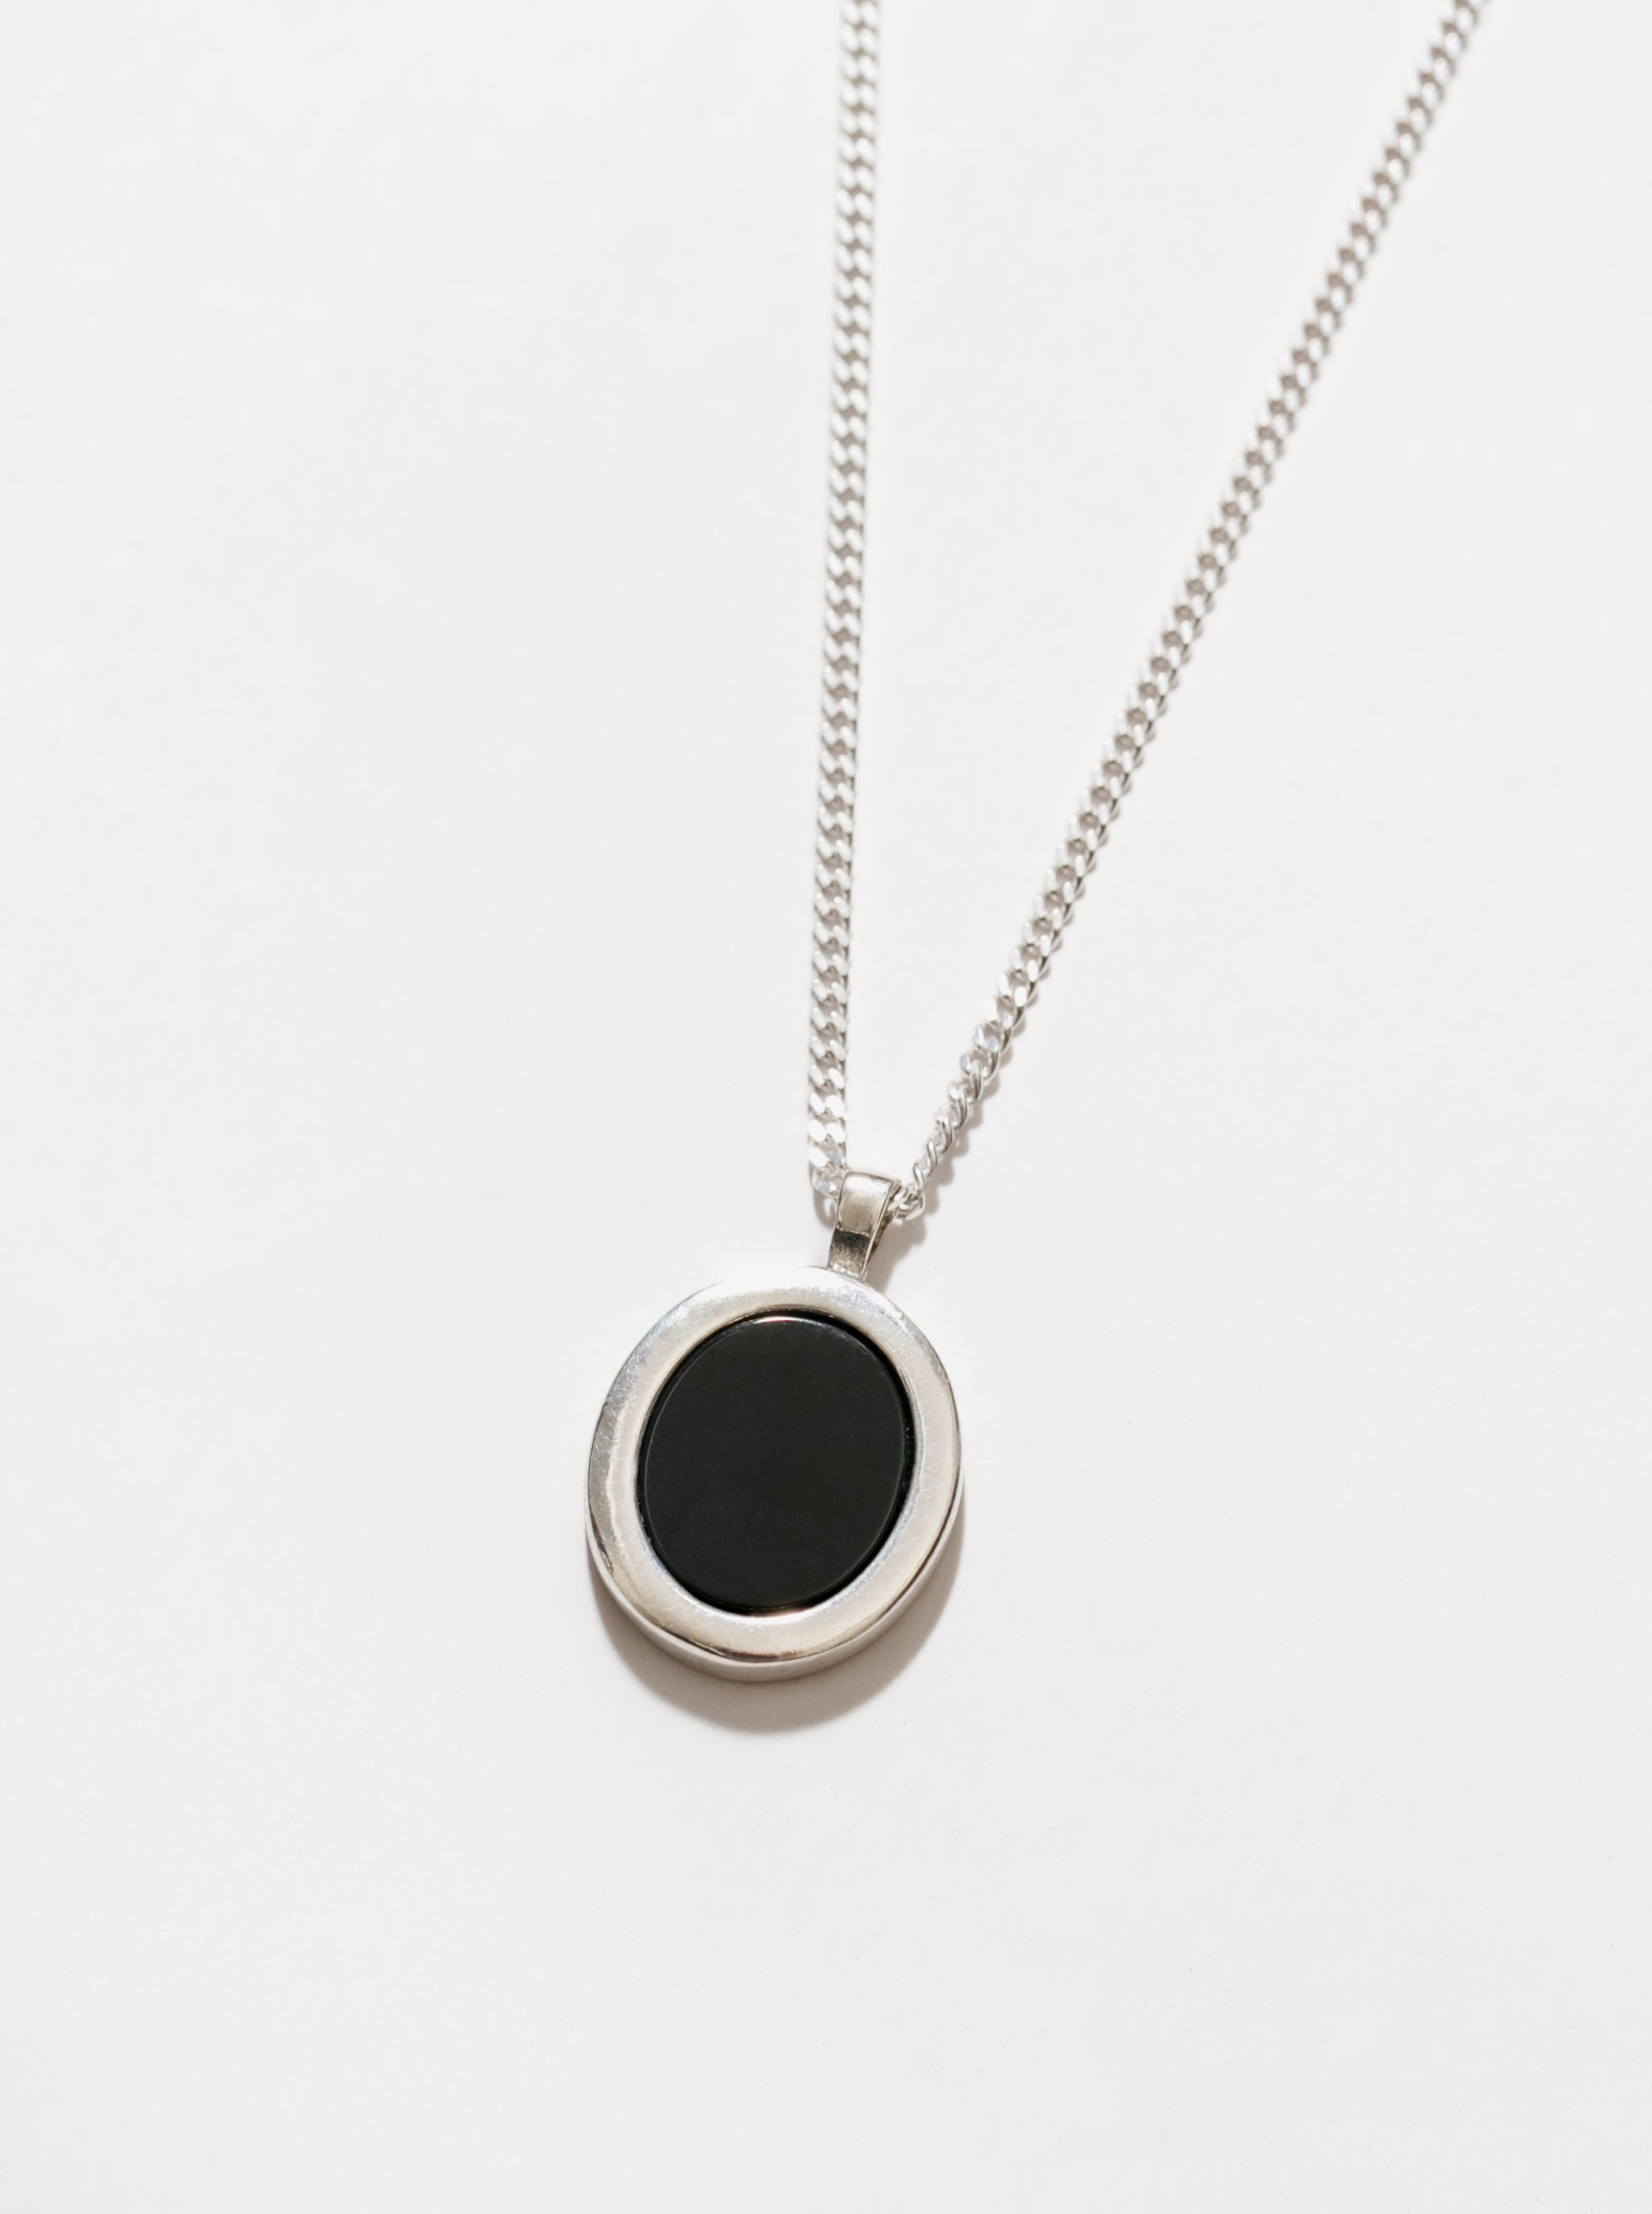 Tosh Necklace in Black and Sterling Silver